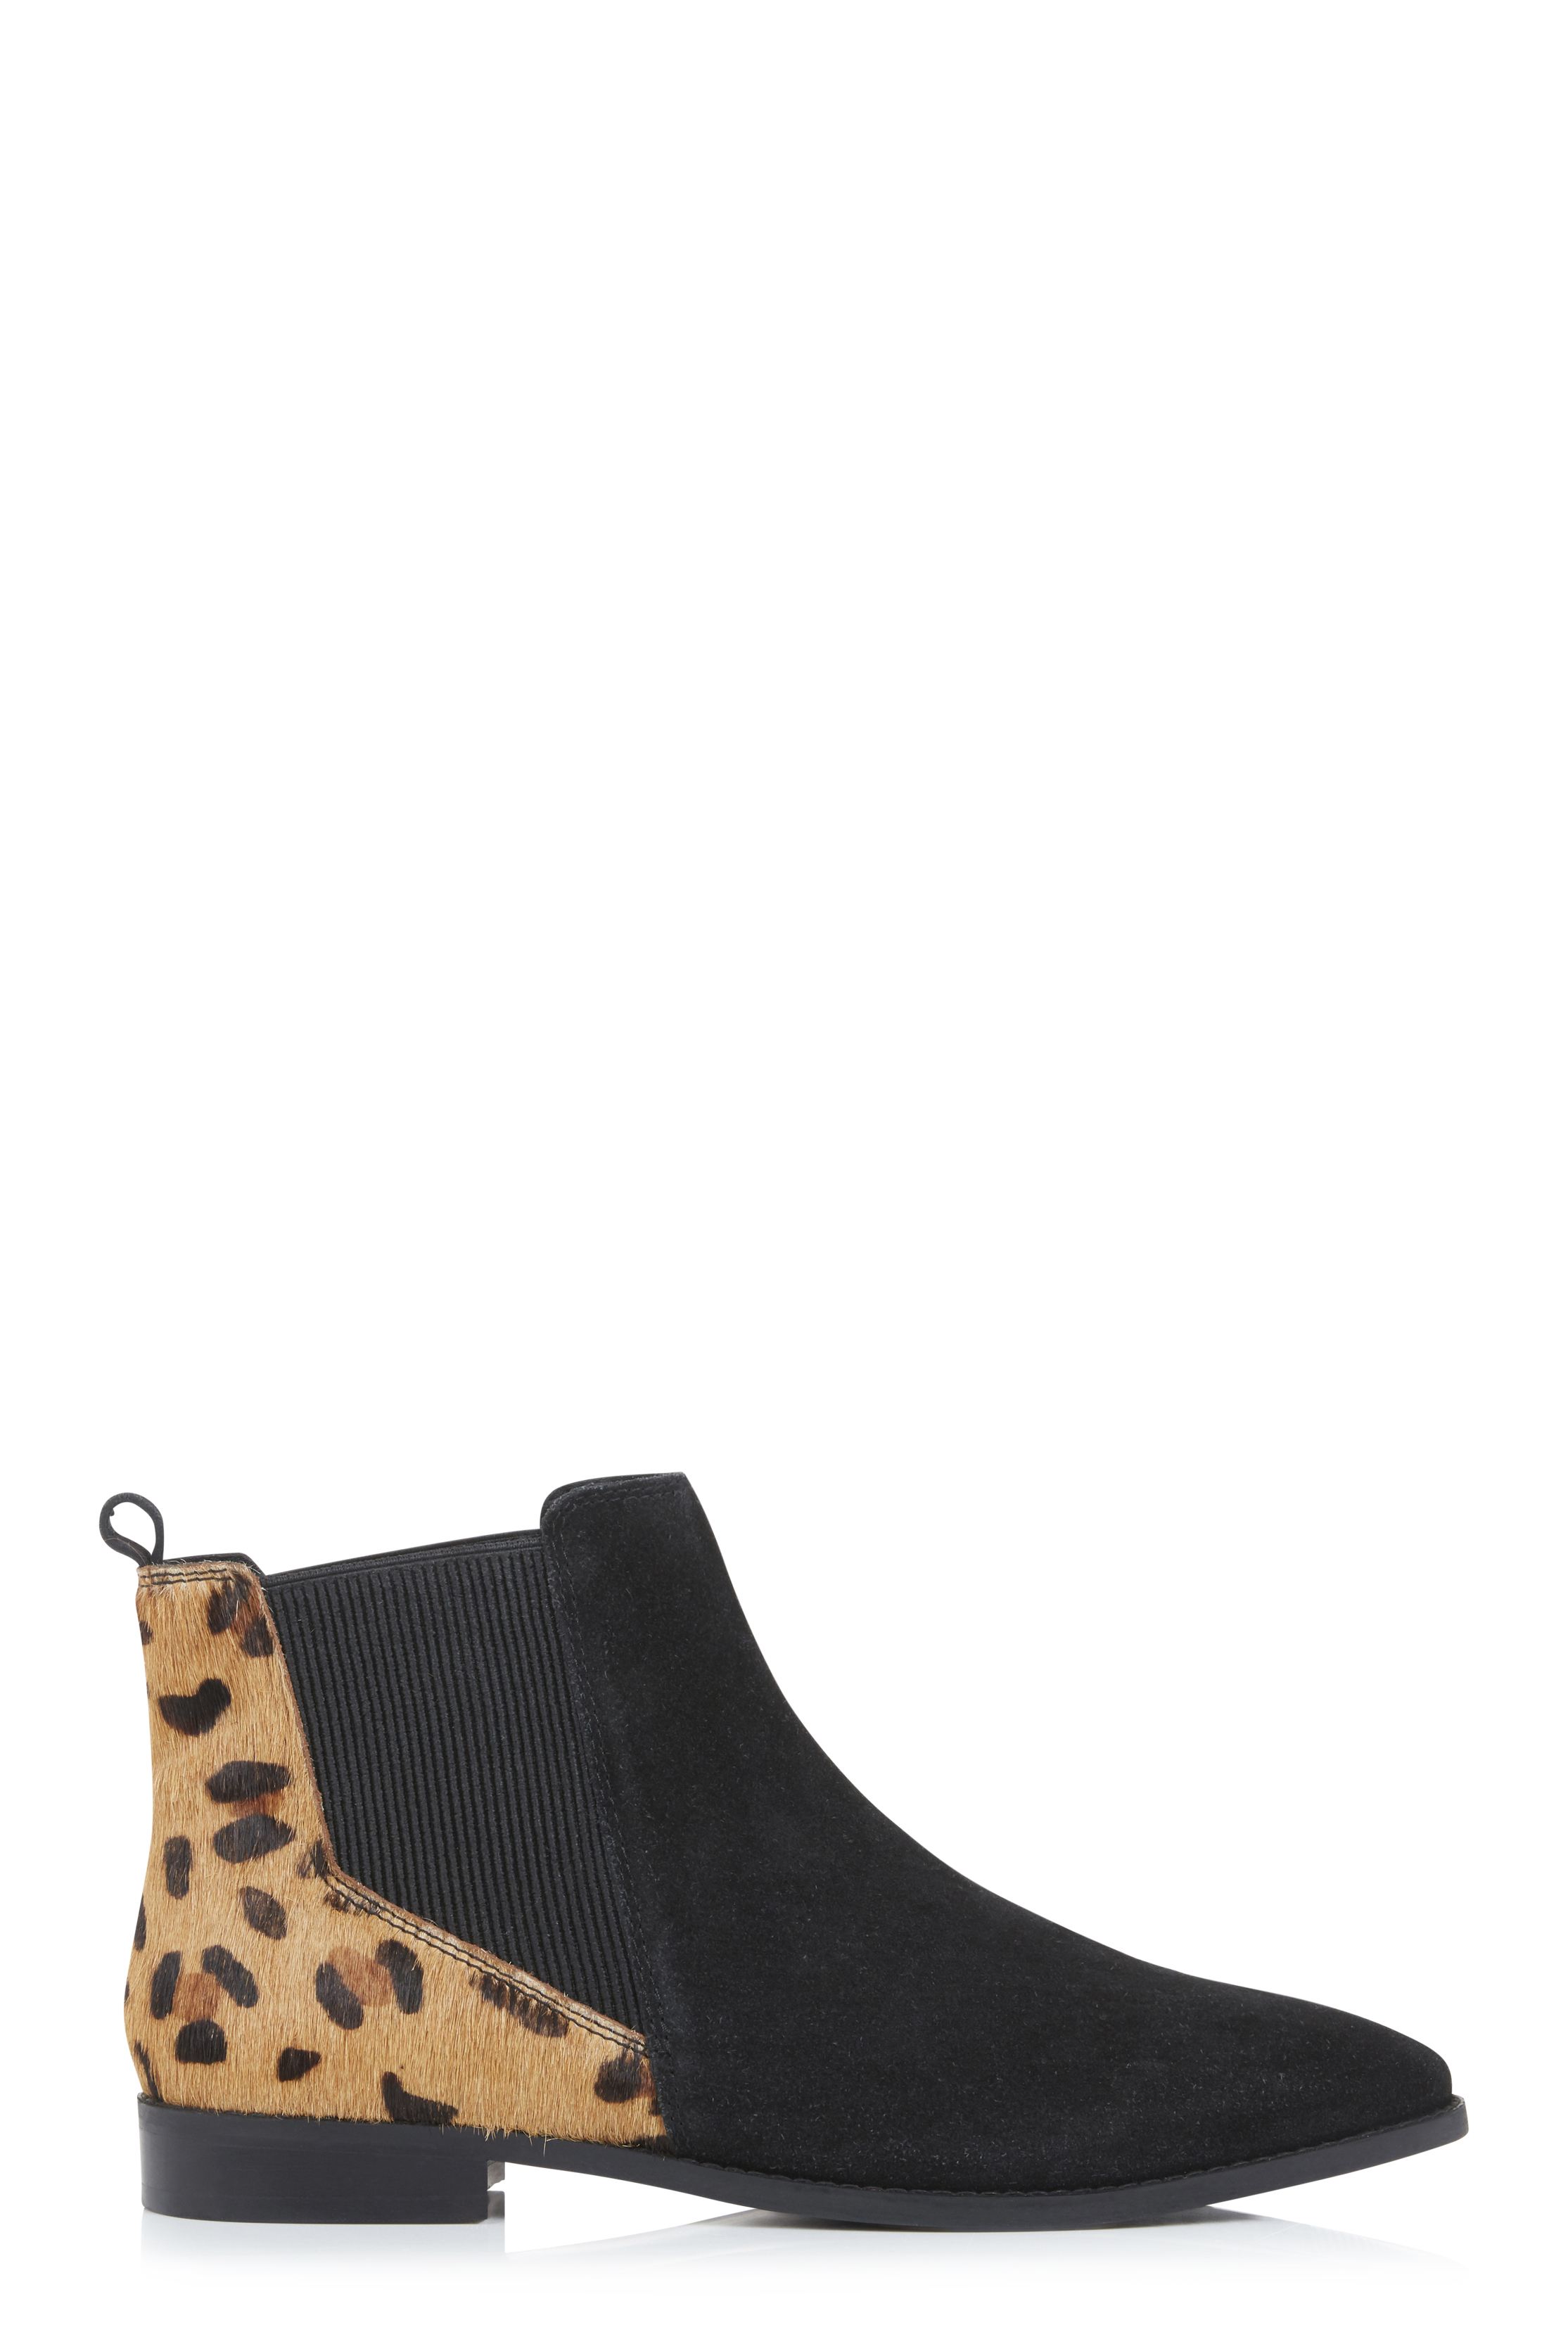 Black Leopard Print Leather Chelsea Boots